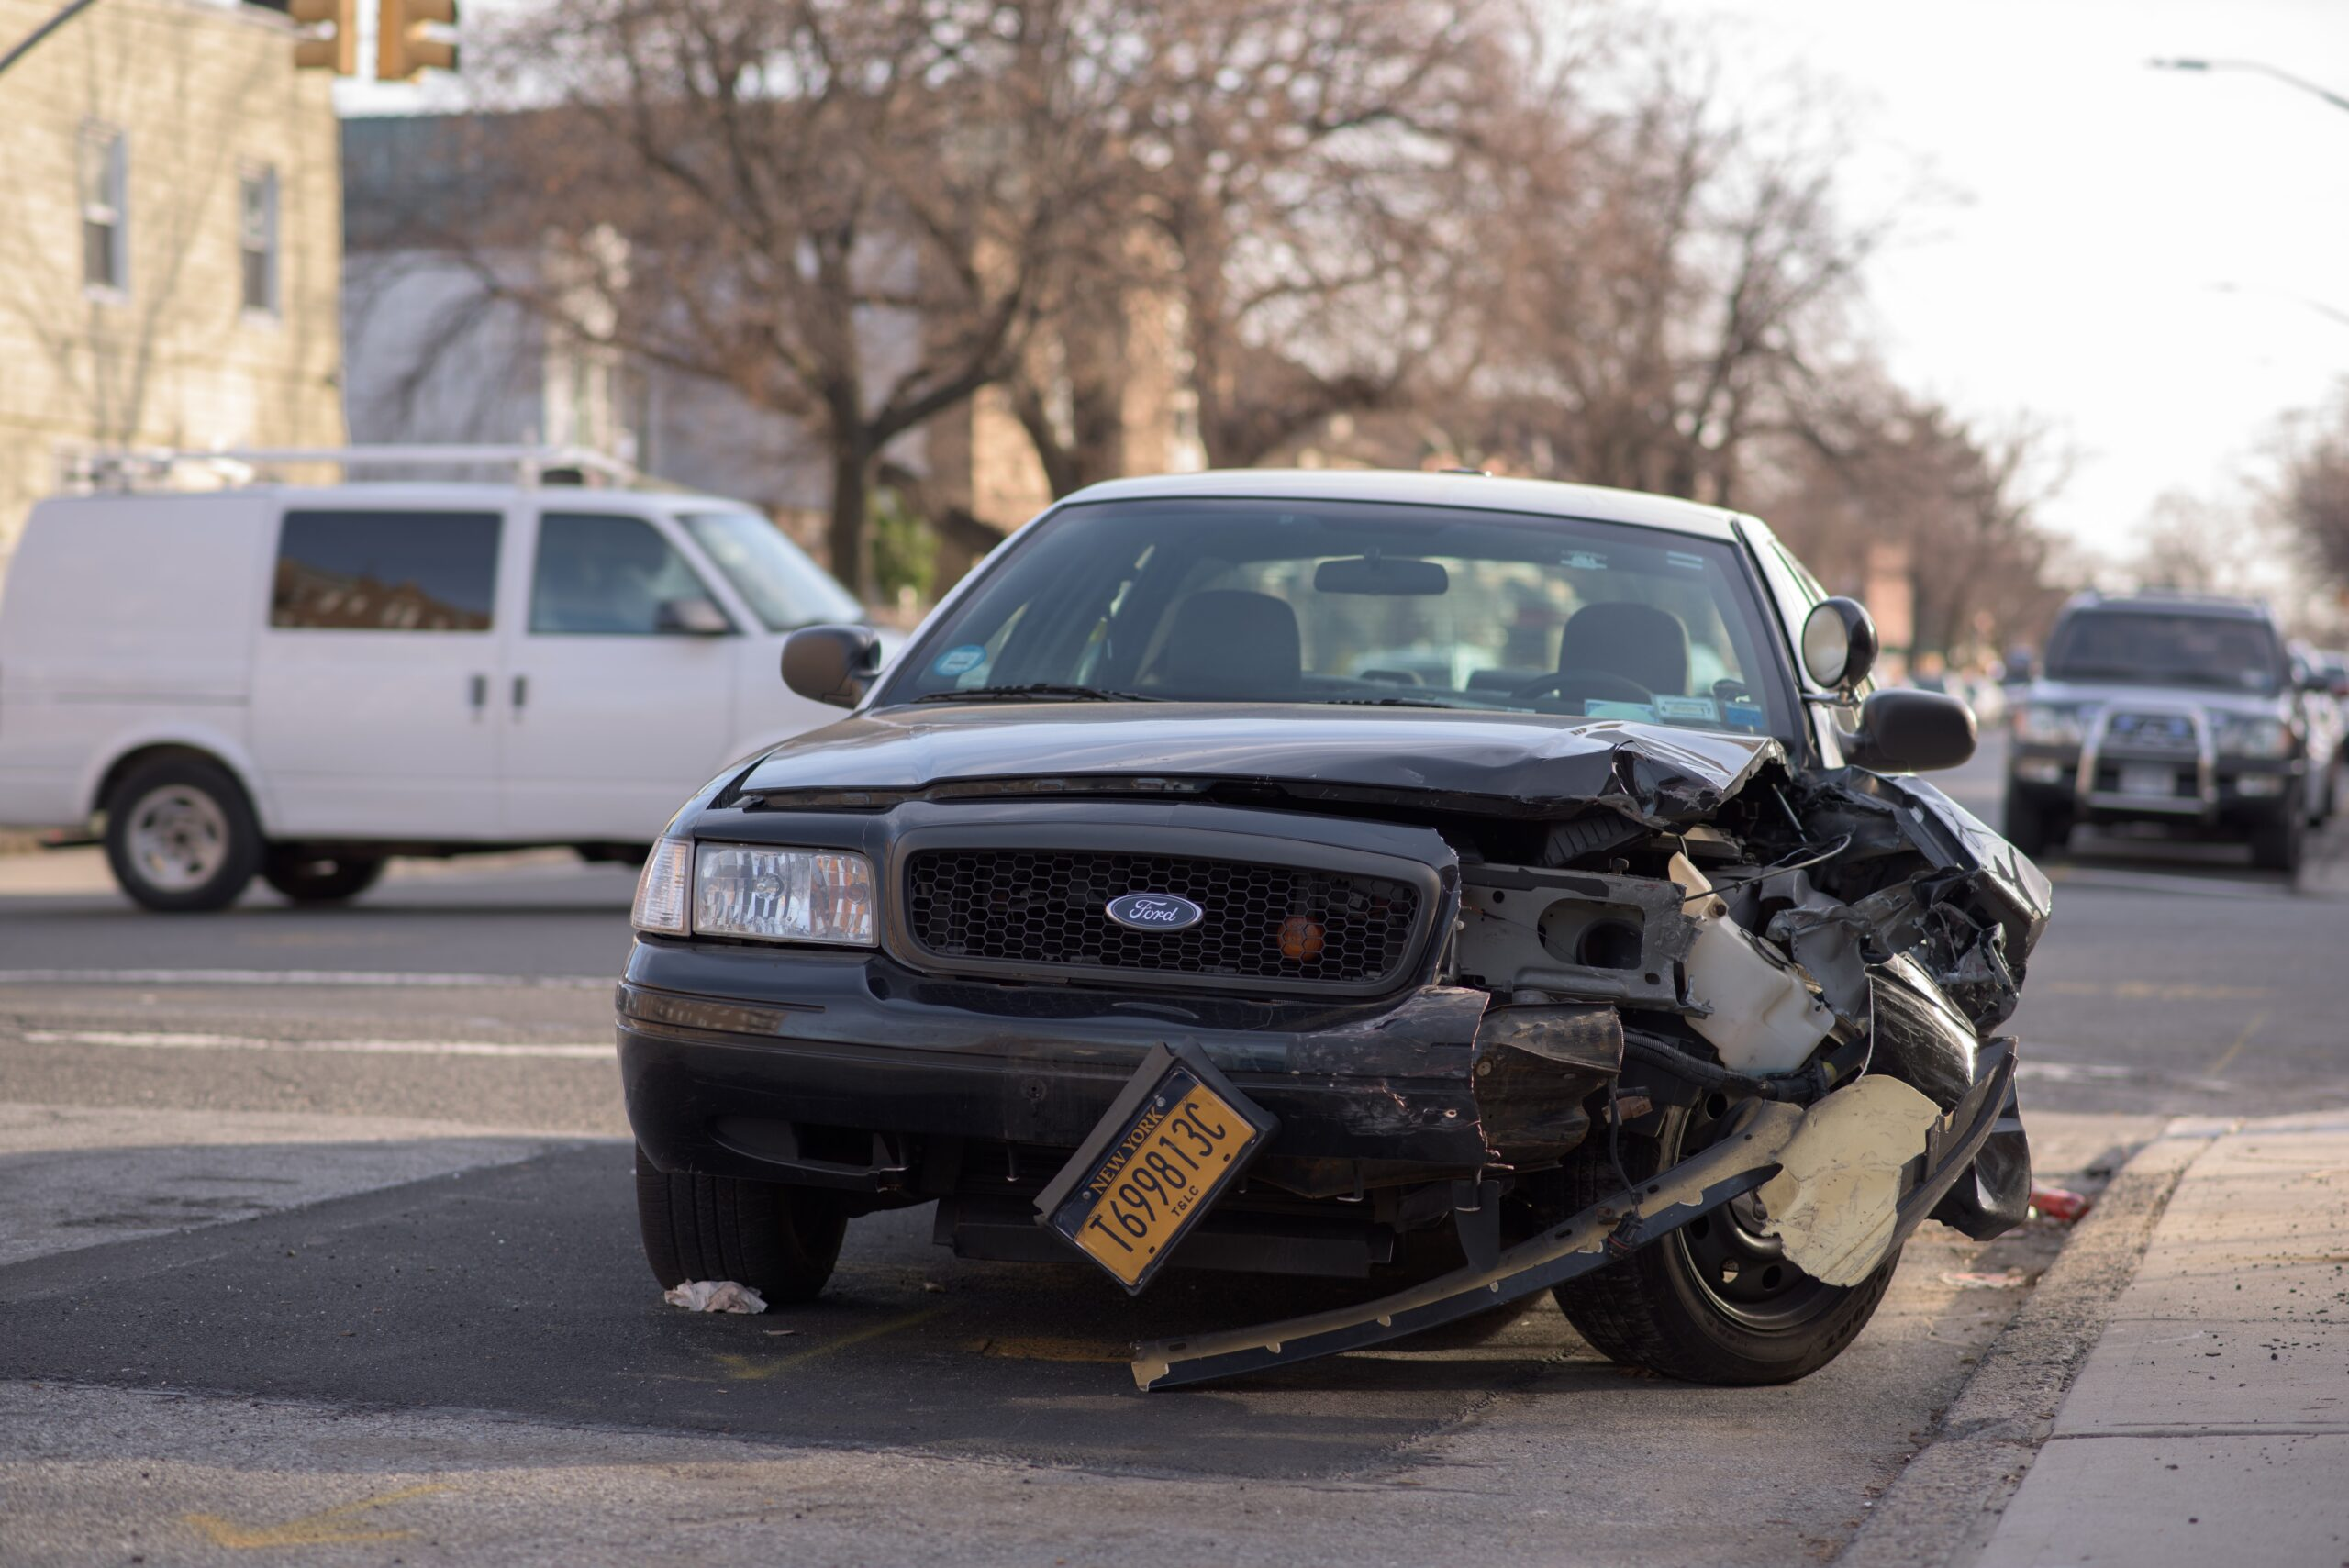 A black car damaged due to an accident